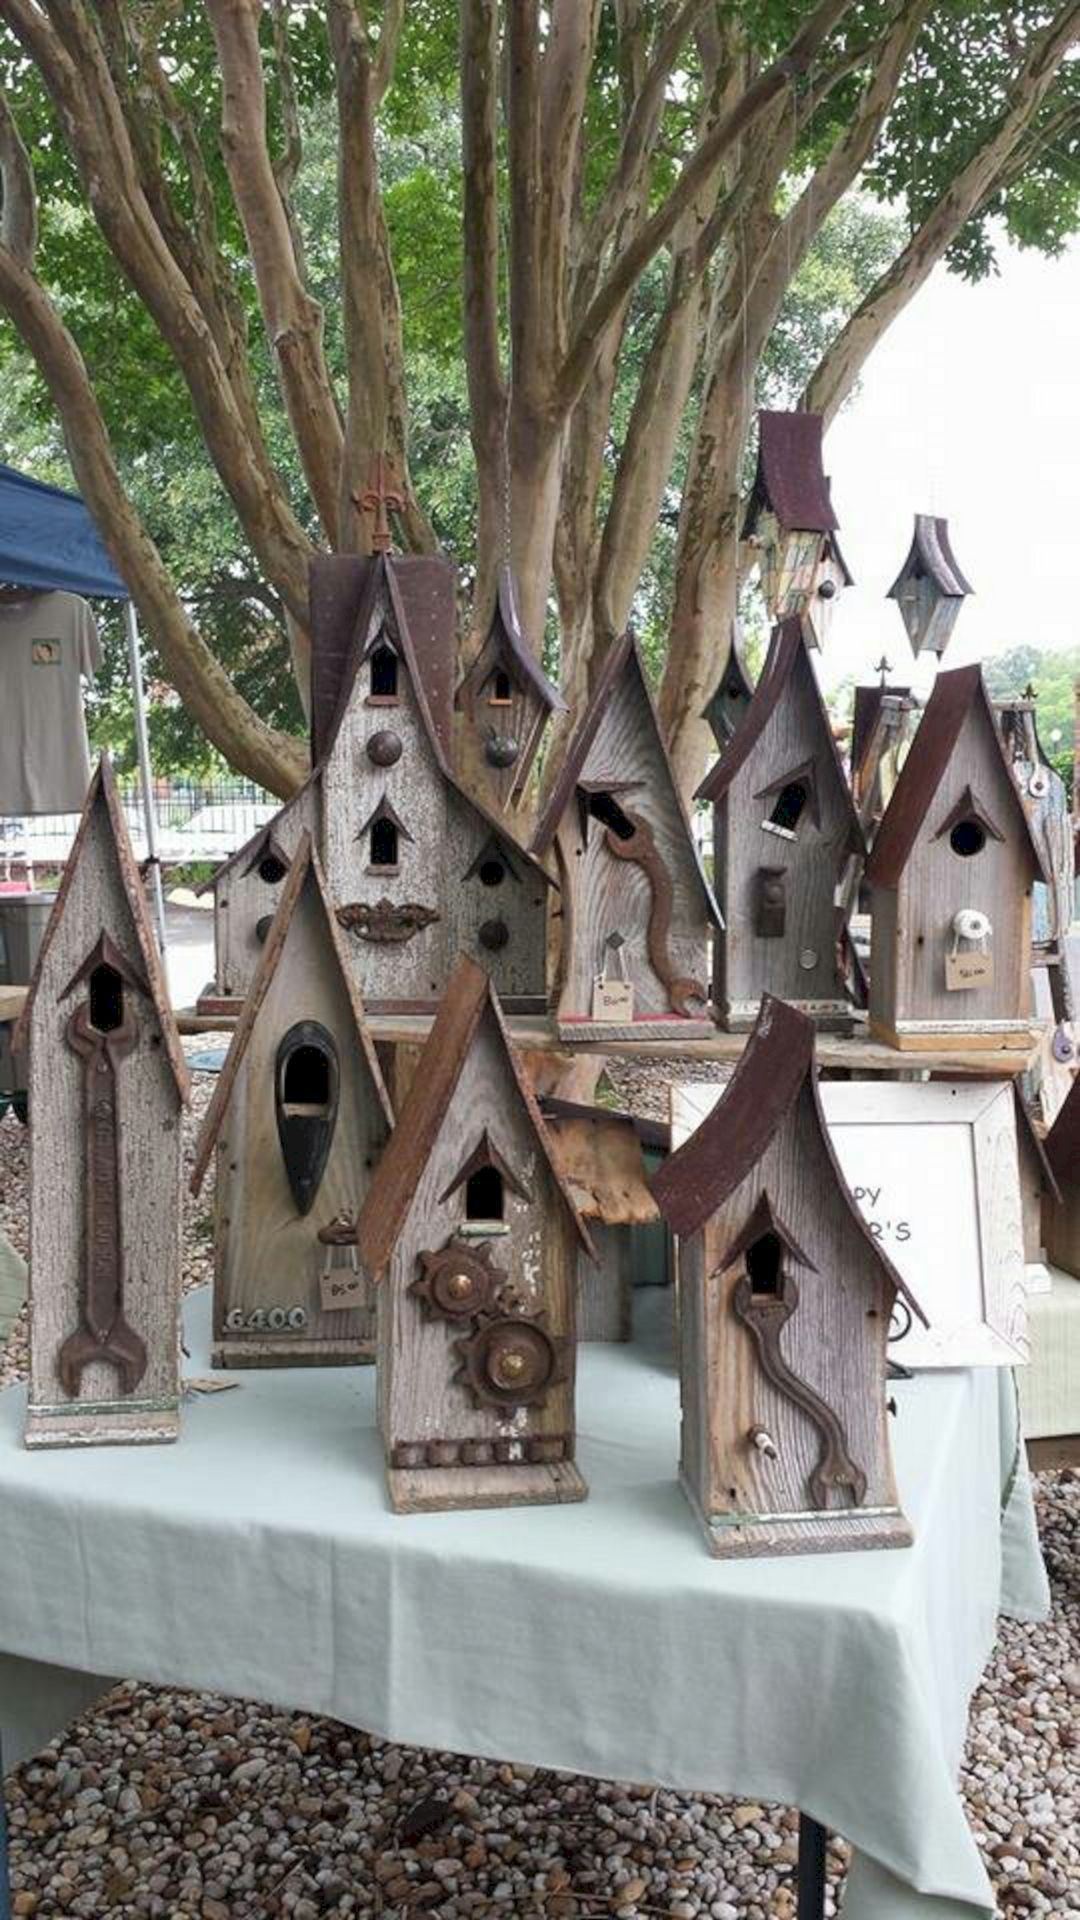 Birdhouse In The Garden That Makes The Park More Beautiful 10 (Birdhouse In The Garden That Makes The Park More Beautiful 10) design ideas and photos #birdhouses